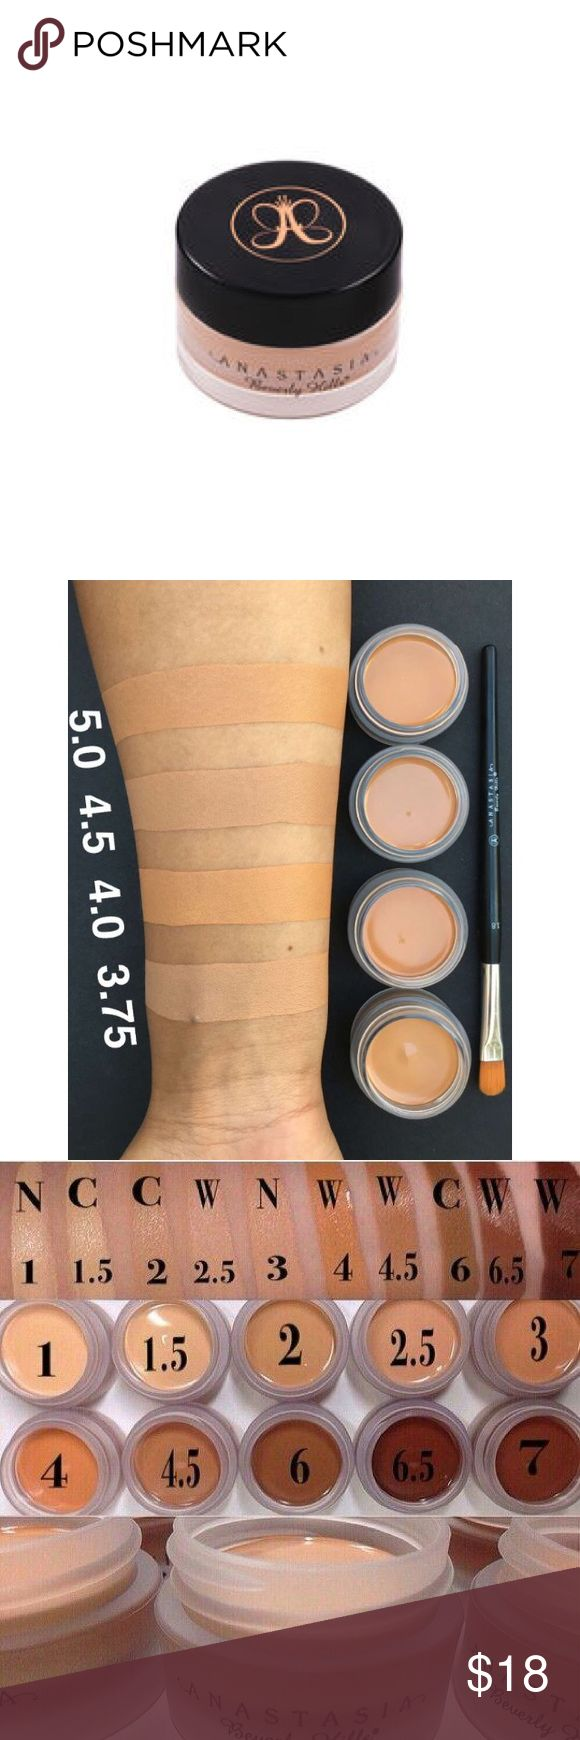 ABH CONCEALER 4.5 New  Never been used  Authentic  No trades Anastasia Beverly Hills Makeup Concealer